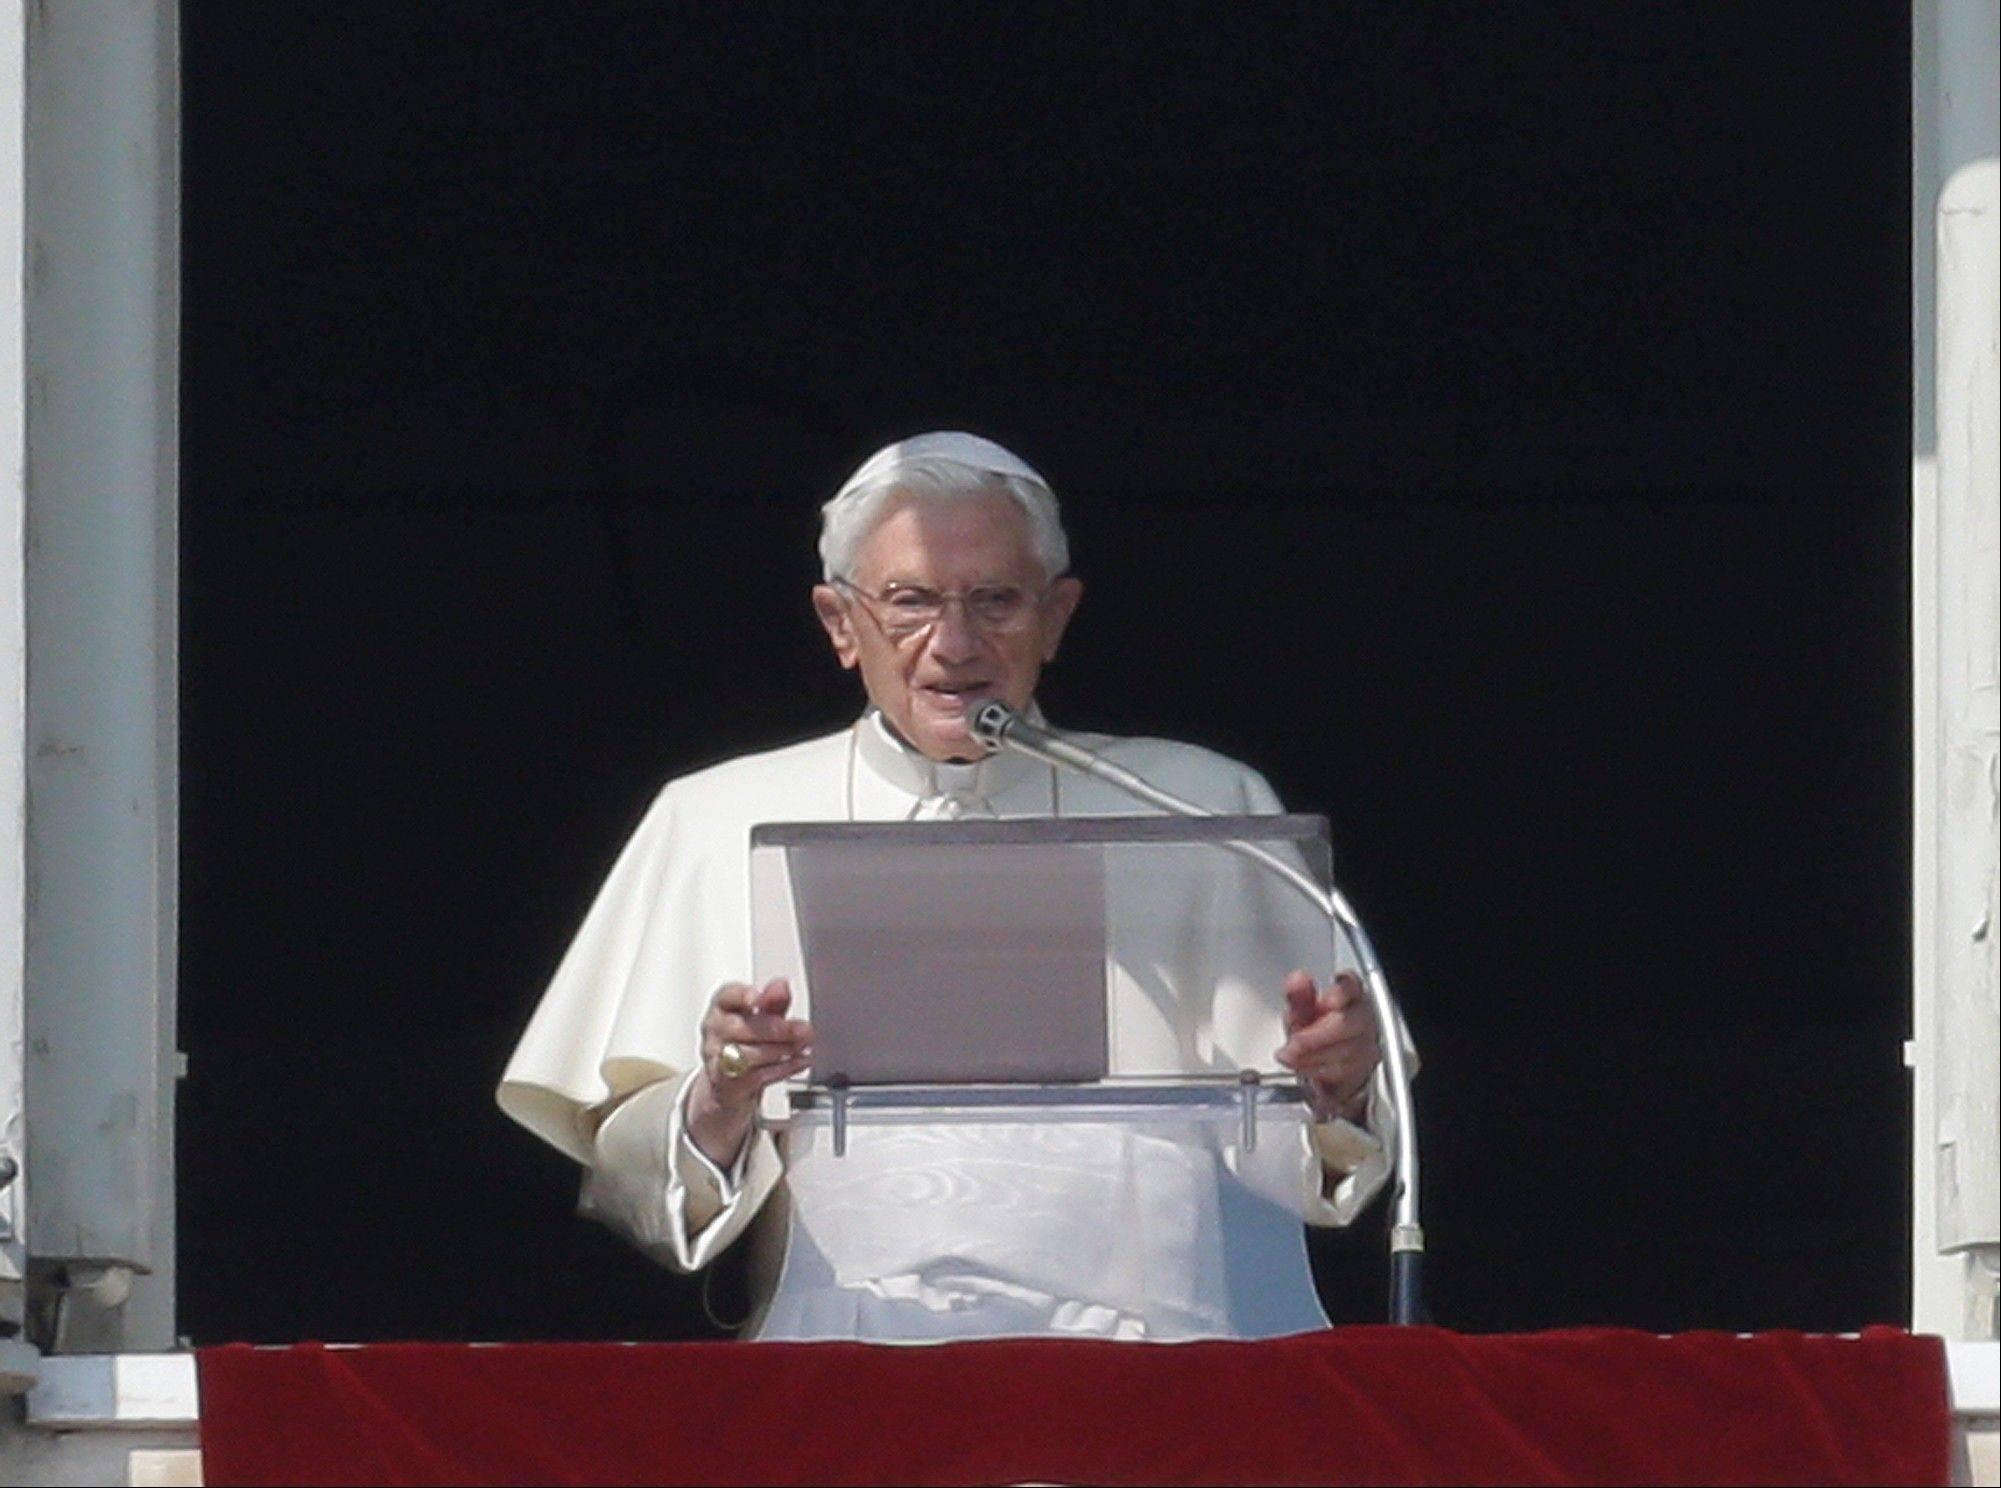 Pope Benedict XVI reads his message during the Angelus noon prayer he celebrated from the window of his studio overlooking St. Peter's square at the Vatican, Sunday, Feb. 17, 2013. The Pontiff blessed the faithful for the first time since announcing his resignation, cheered by an emotional crowd of tens of thousands of well-wishers from around the world.